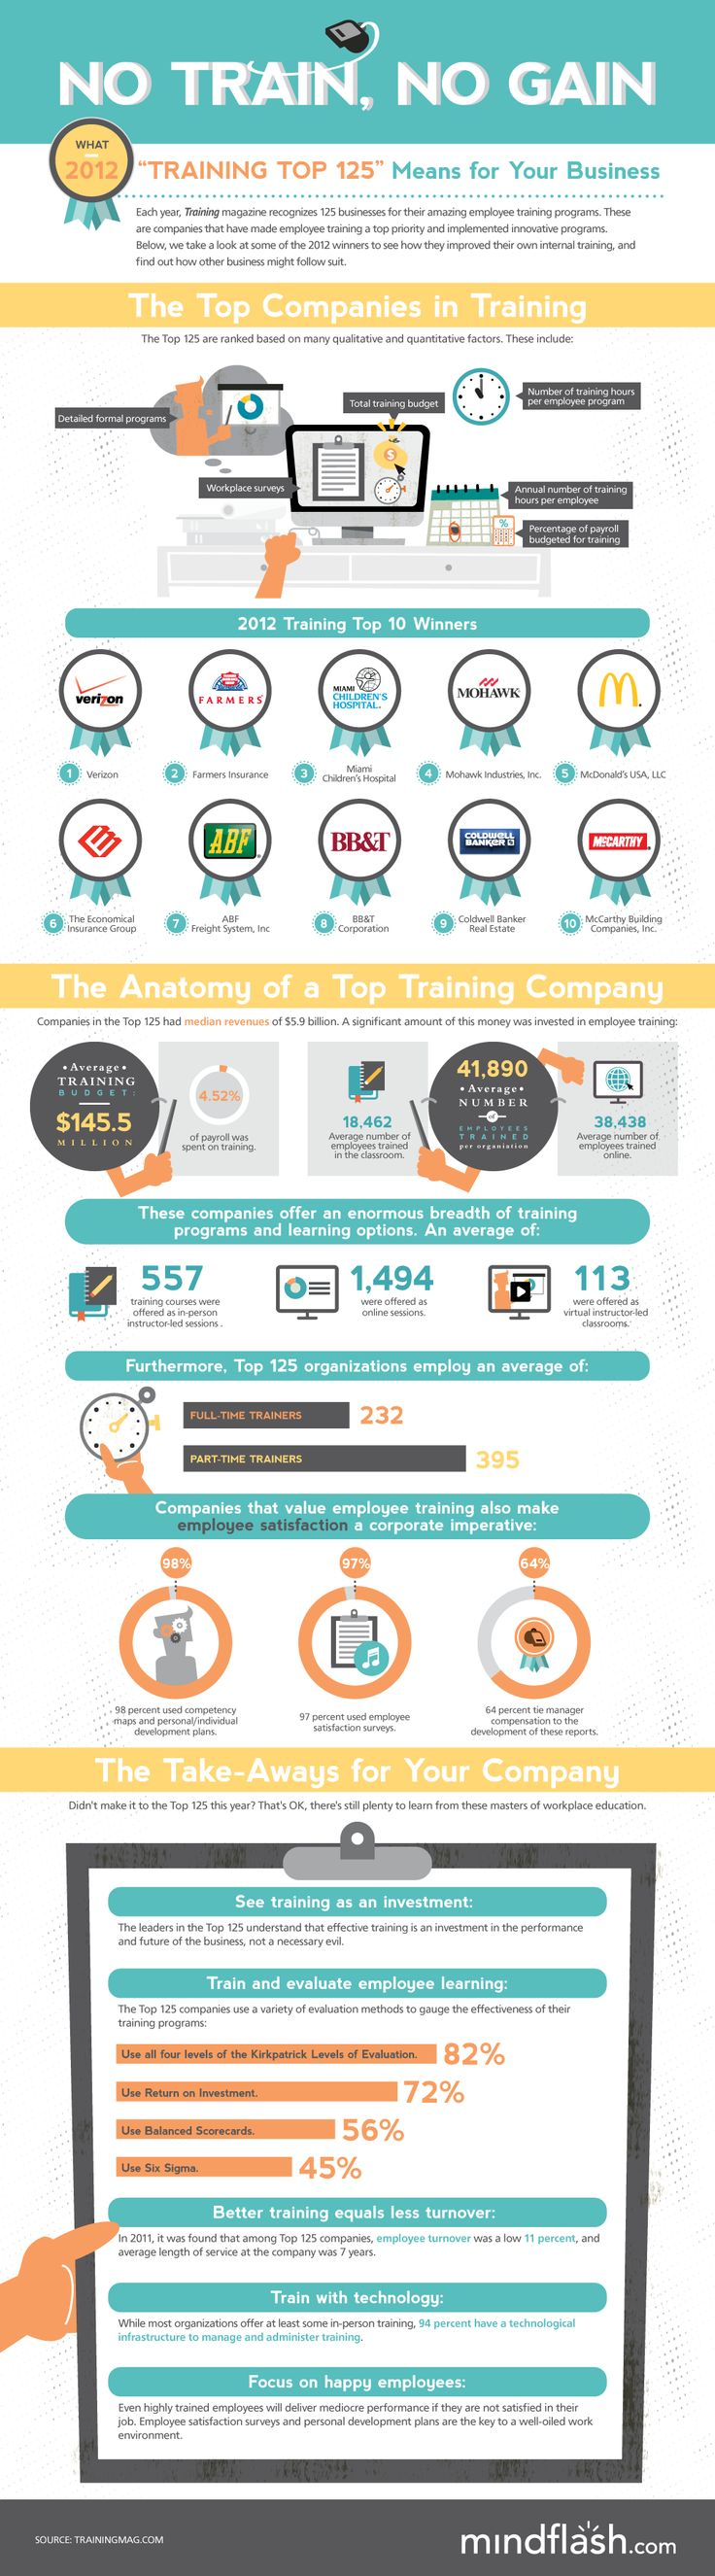 No Train, No Gain: What The 2012 Training Top 125 Means For Your Business #infographic #eLearning